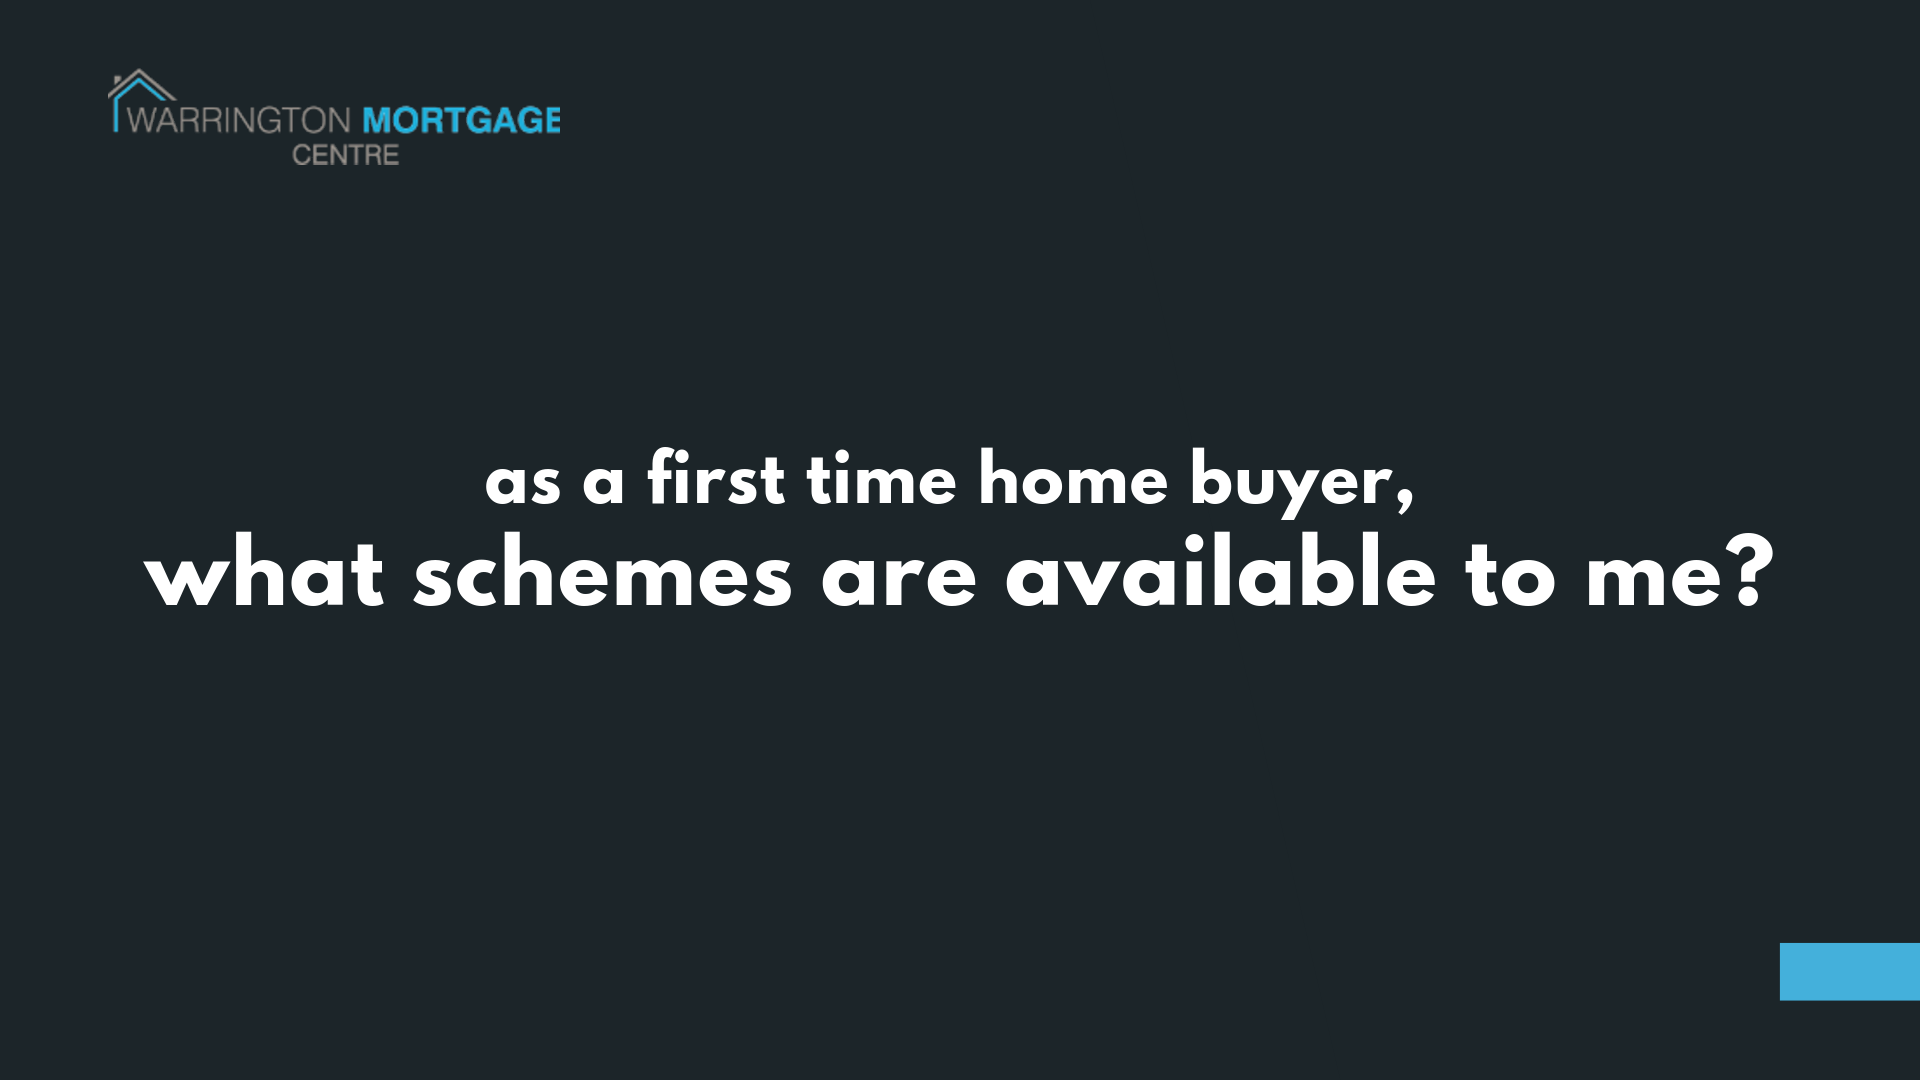 Schemes available for first time home buyers in the UK.